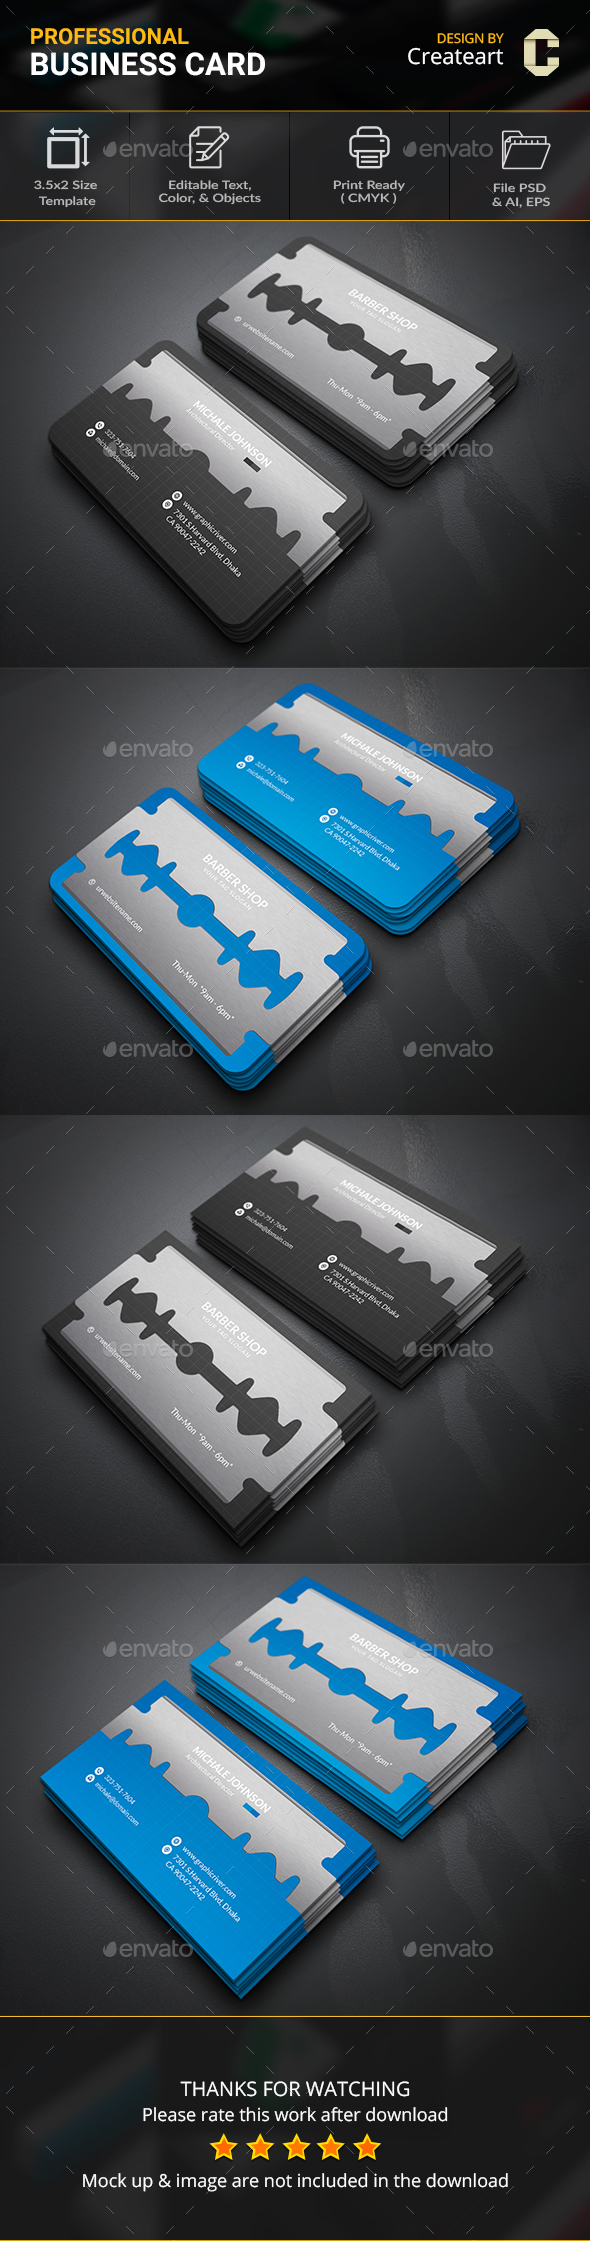 Blade Business Card | Business Cards